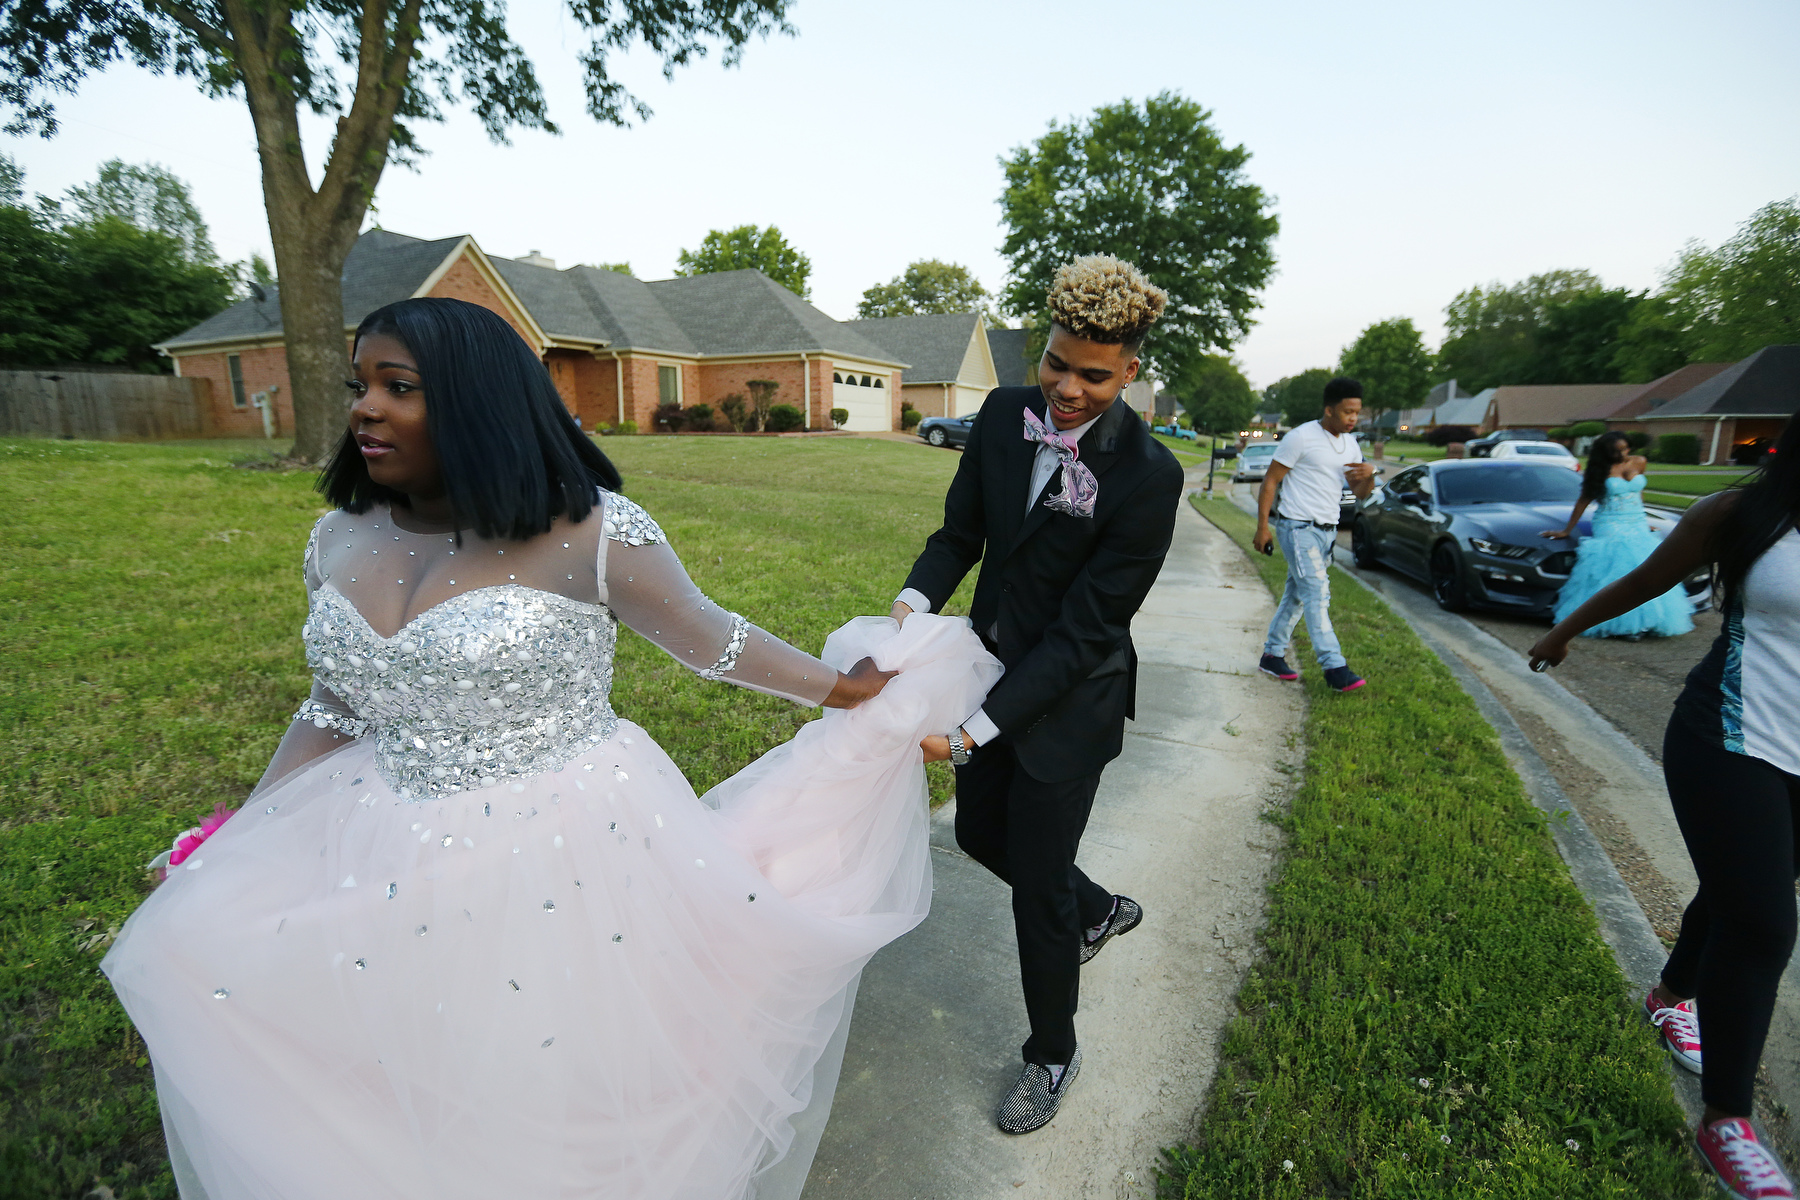 May 6, 2016 - Zearius Jenkins holds Alex Carlton's dress as he picks her up to take her to the Southwind High School prom. After years of going to school together the two became such good friends that they think of each other as siblings. Cartlon was among the original 16 students that crossed over from the St. George's Memphis campus to the Collierville campus but was forced to leave the school after her scholarship was not renewed following the eighth grade. {quote}[St. George's graduates] have more opportunity.{quote} she said. {quote}Southwind doesn't provide as great an opportunity for college. (Mike Brown/The Commercial Appeal)